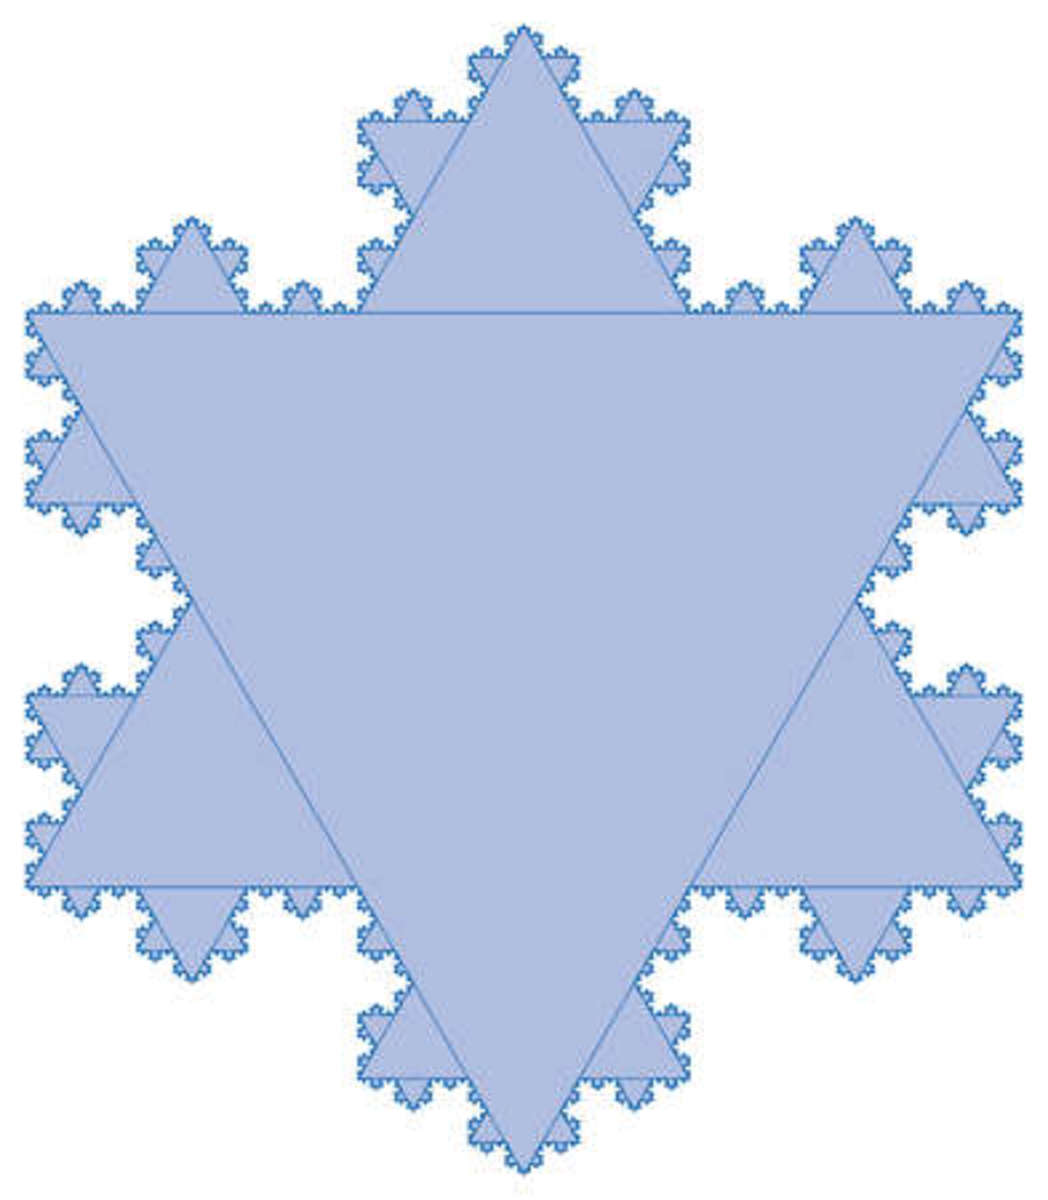 The Koch curve can be married to the Sierpinski triangle. Look carefully and you can see the possibilities.